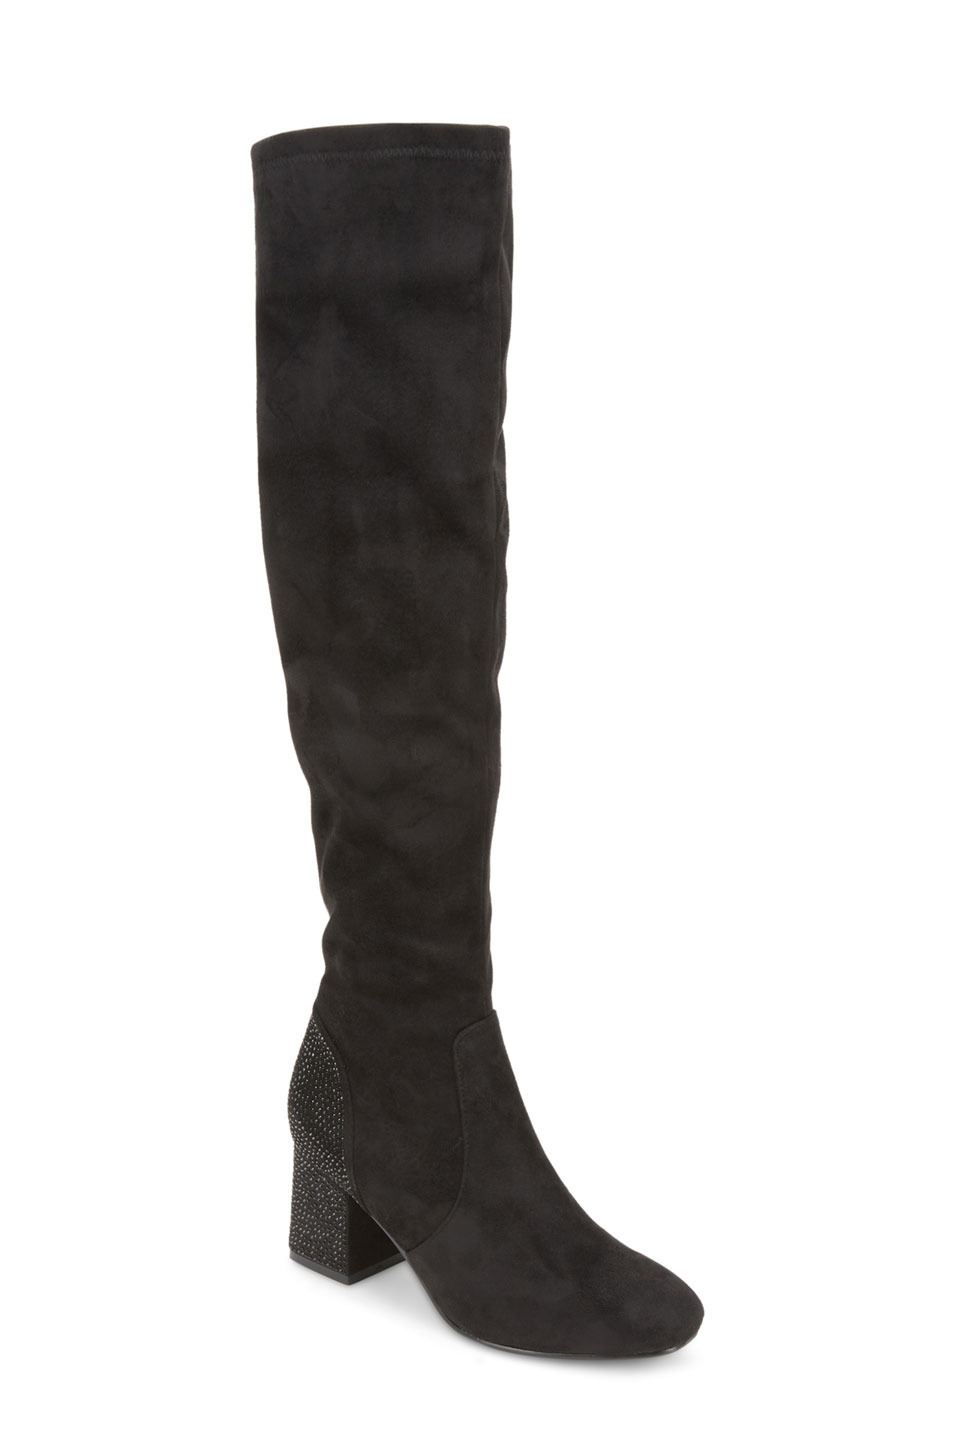 CANTWELL HEEL EMBELLISHED BOOTS IN BLACK